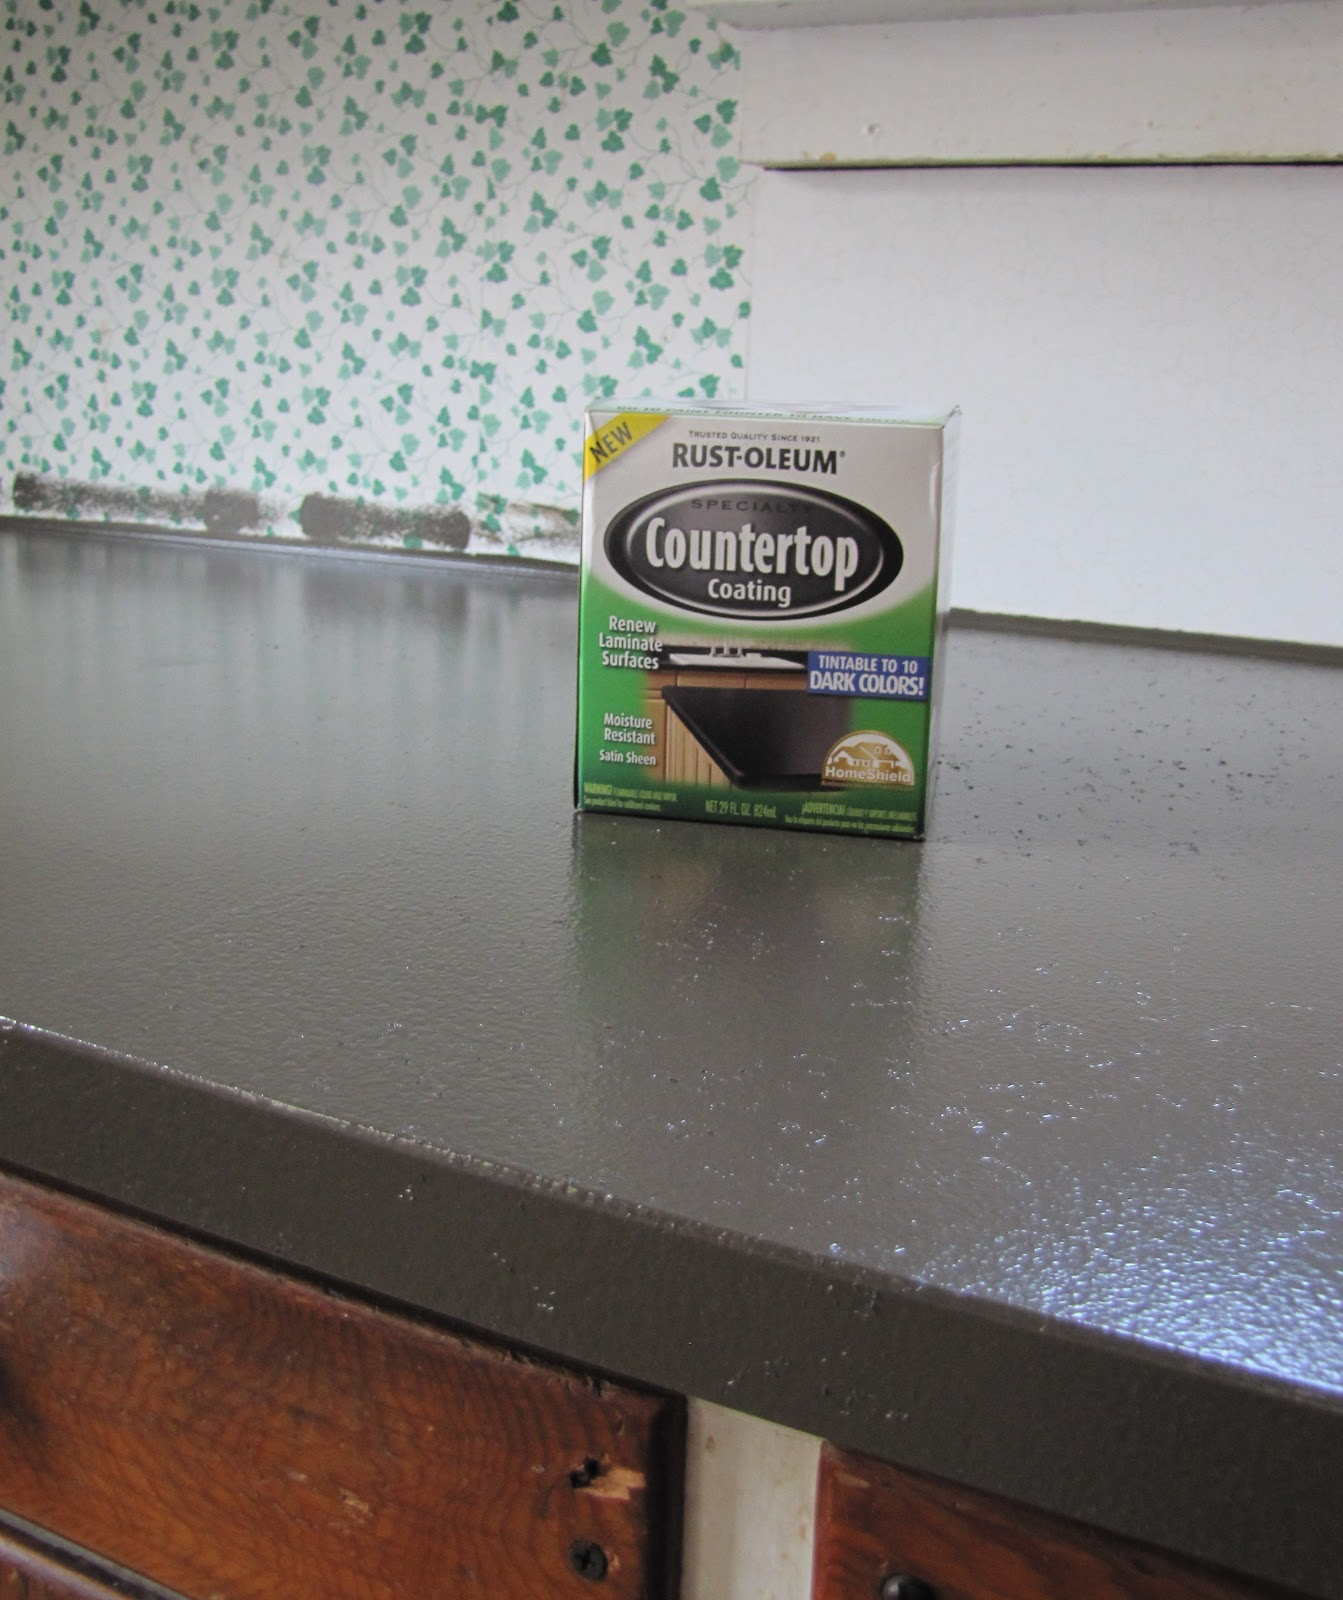 Countertop Coating : Rust-Oleums Countertop Coating- purchased for just over $20 bucks ...